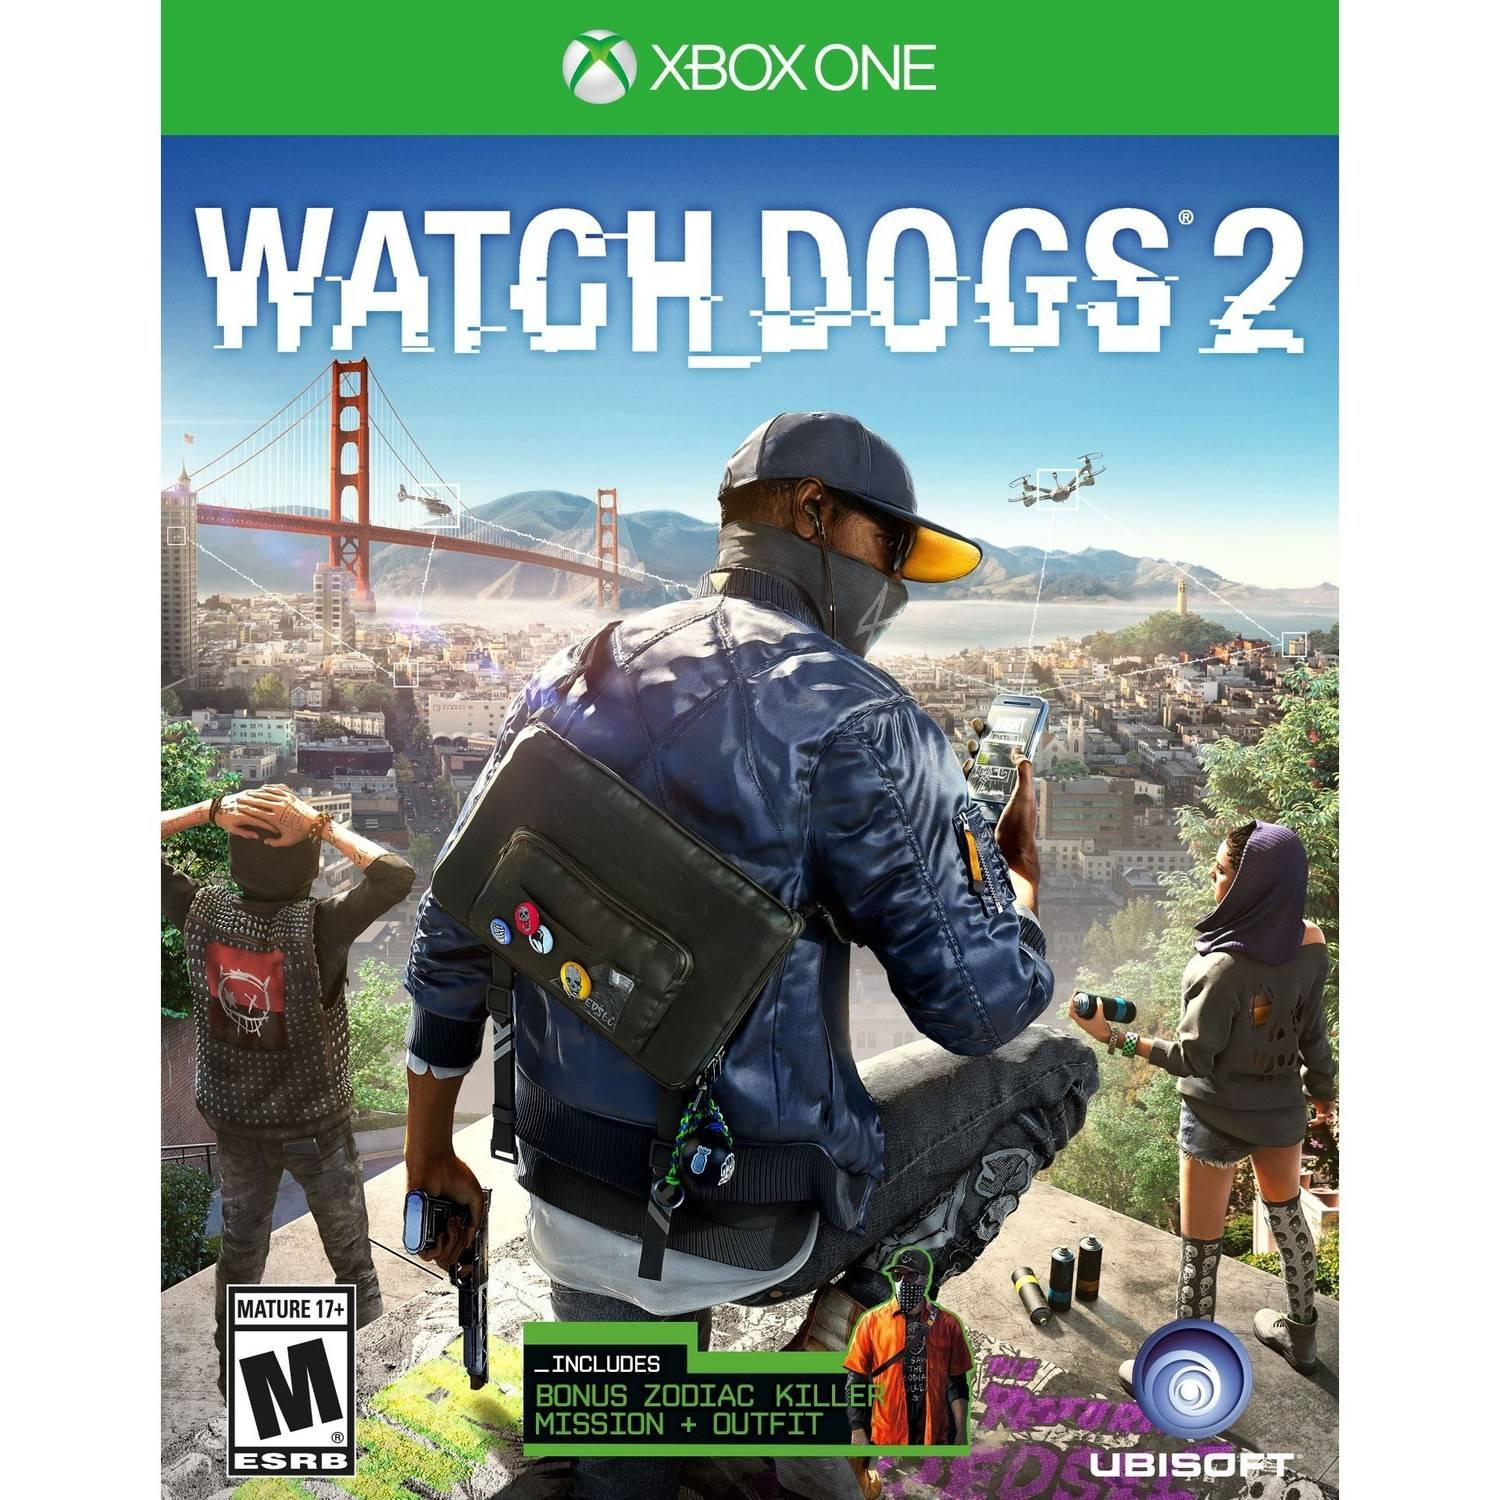 Watch Dogs 2 (Xbox One) Ubisoft, 887256022785